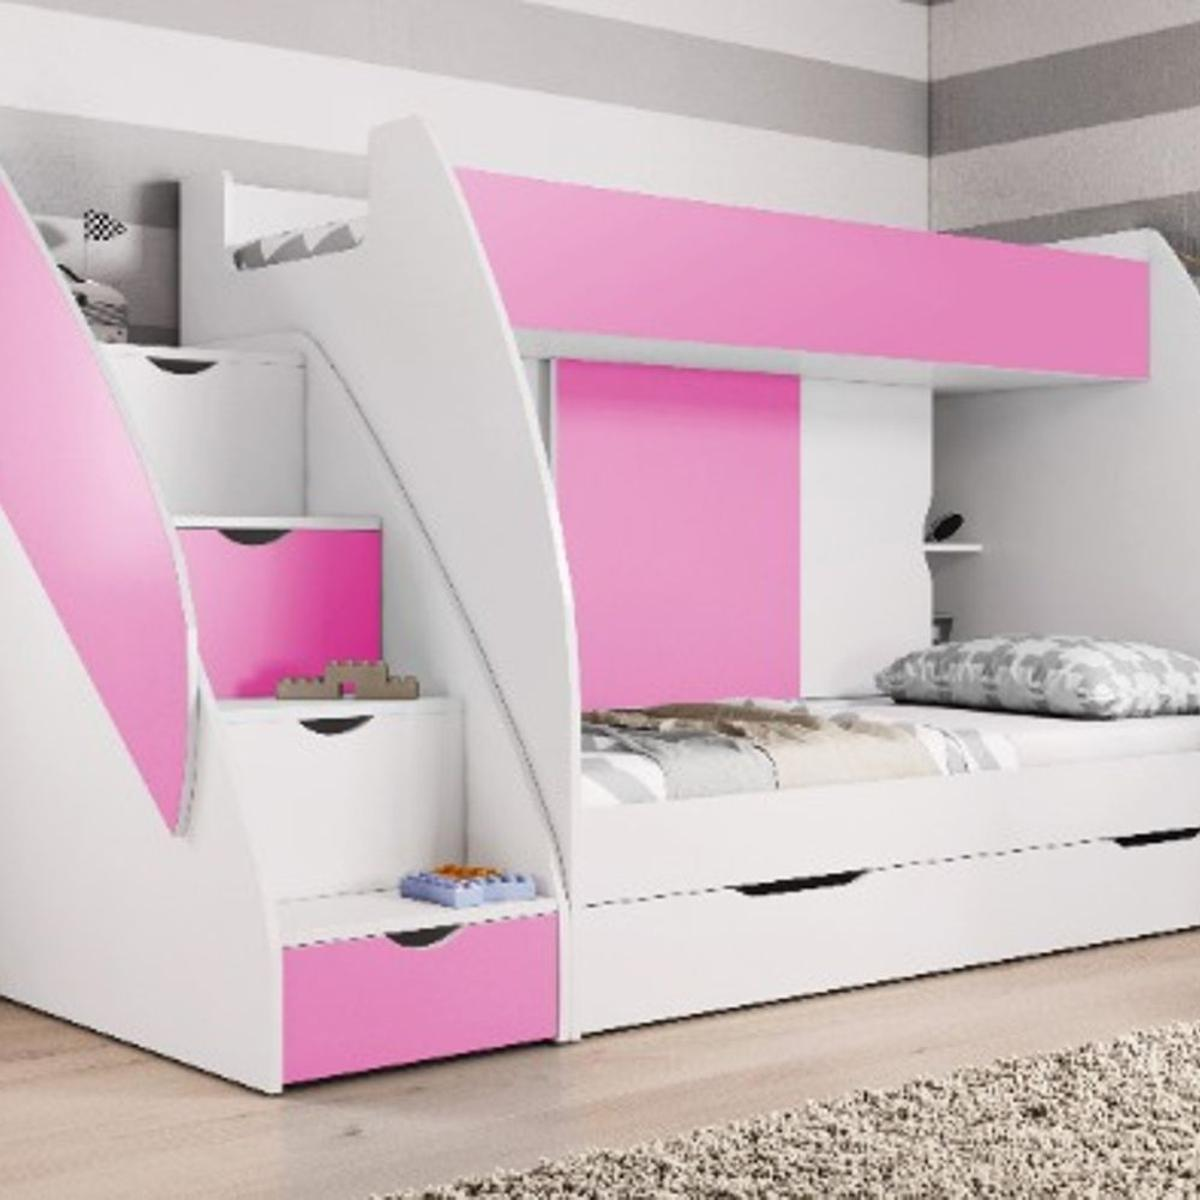 Picture of: Pink Children Kids Bunk Bed Storage Solution In M350bn Failsworth For 395 00 For Sale Shpock